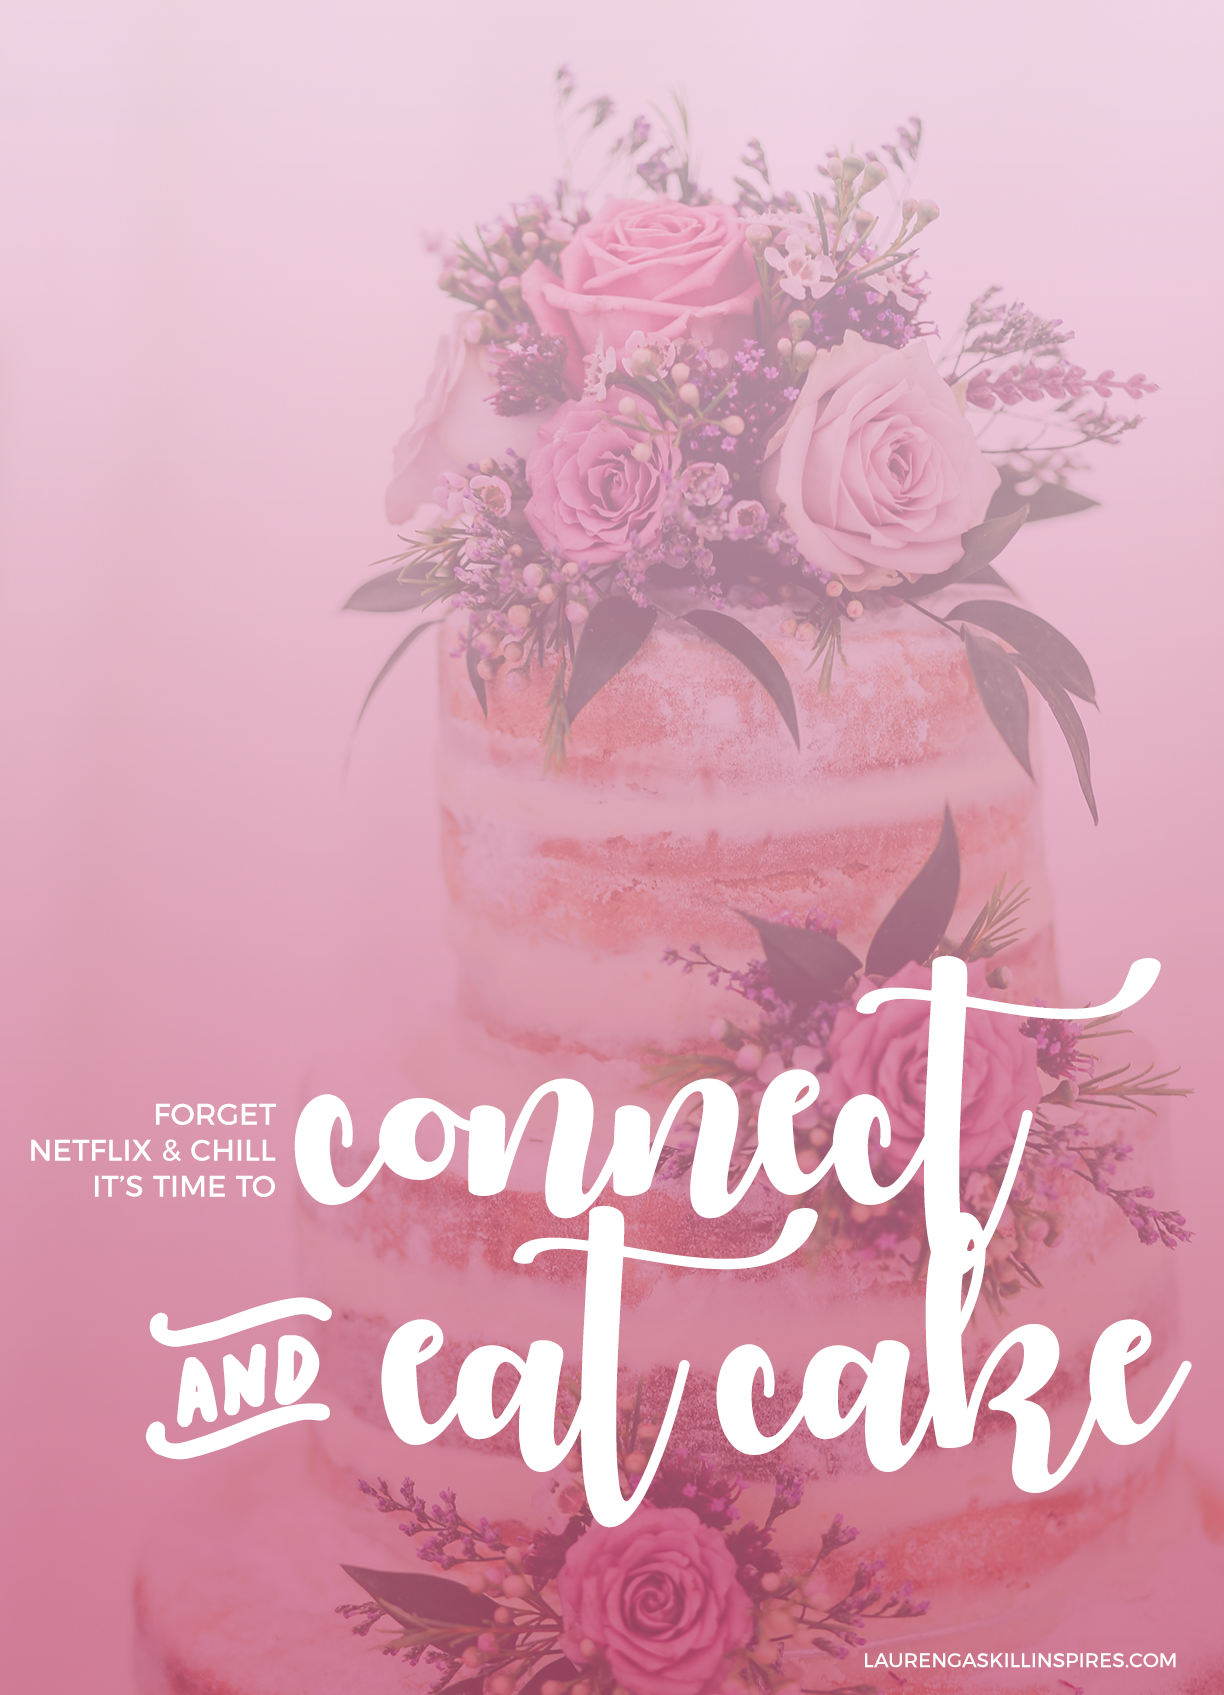 Forget Netflix and chill. It's time to connect and eat cake. // LaurenGaskillInspires.com